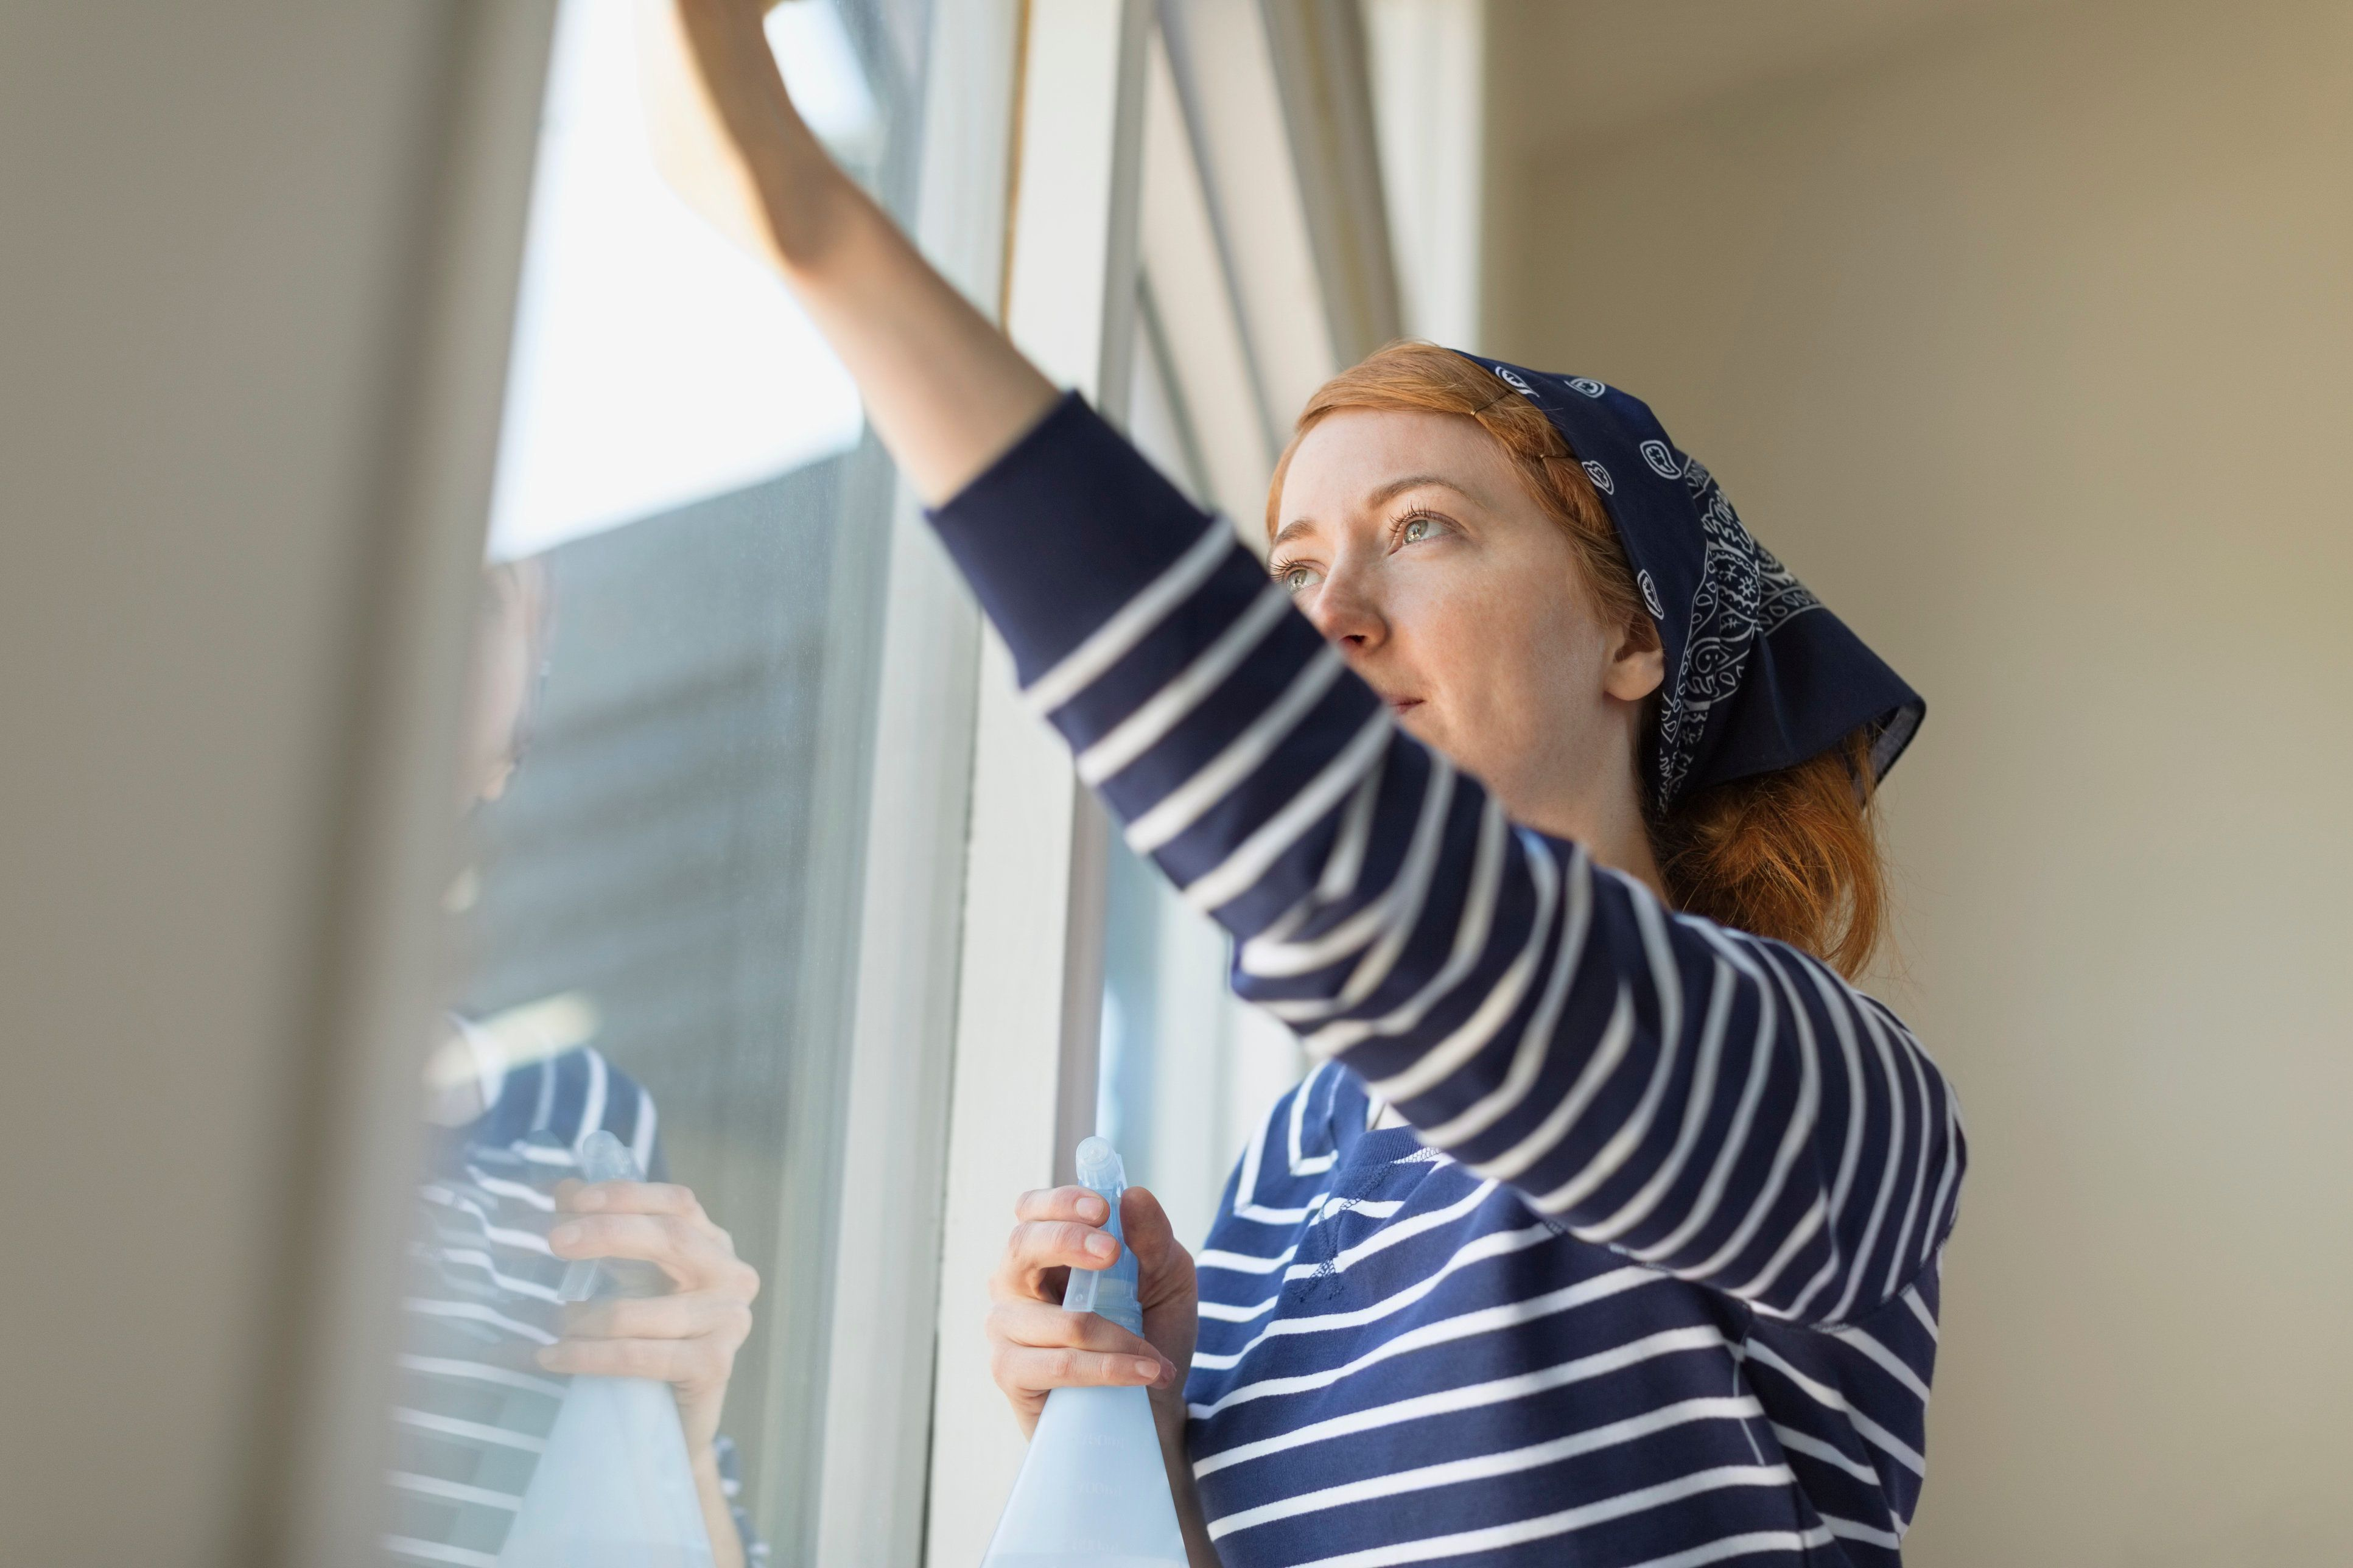 10 Household Chores You Only Need To Do Once A